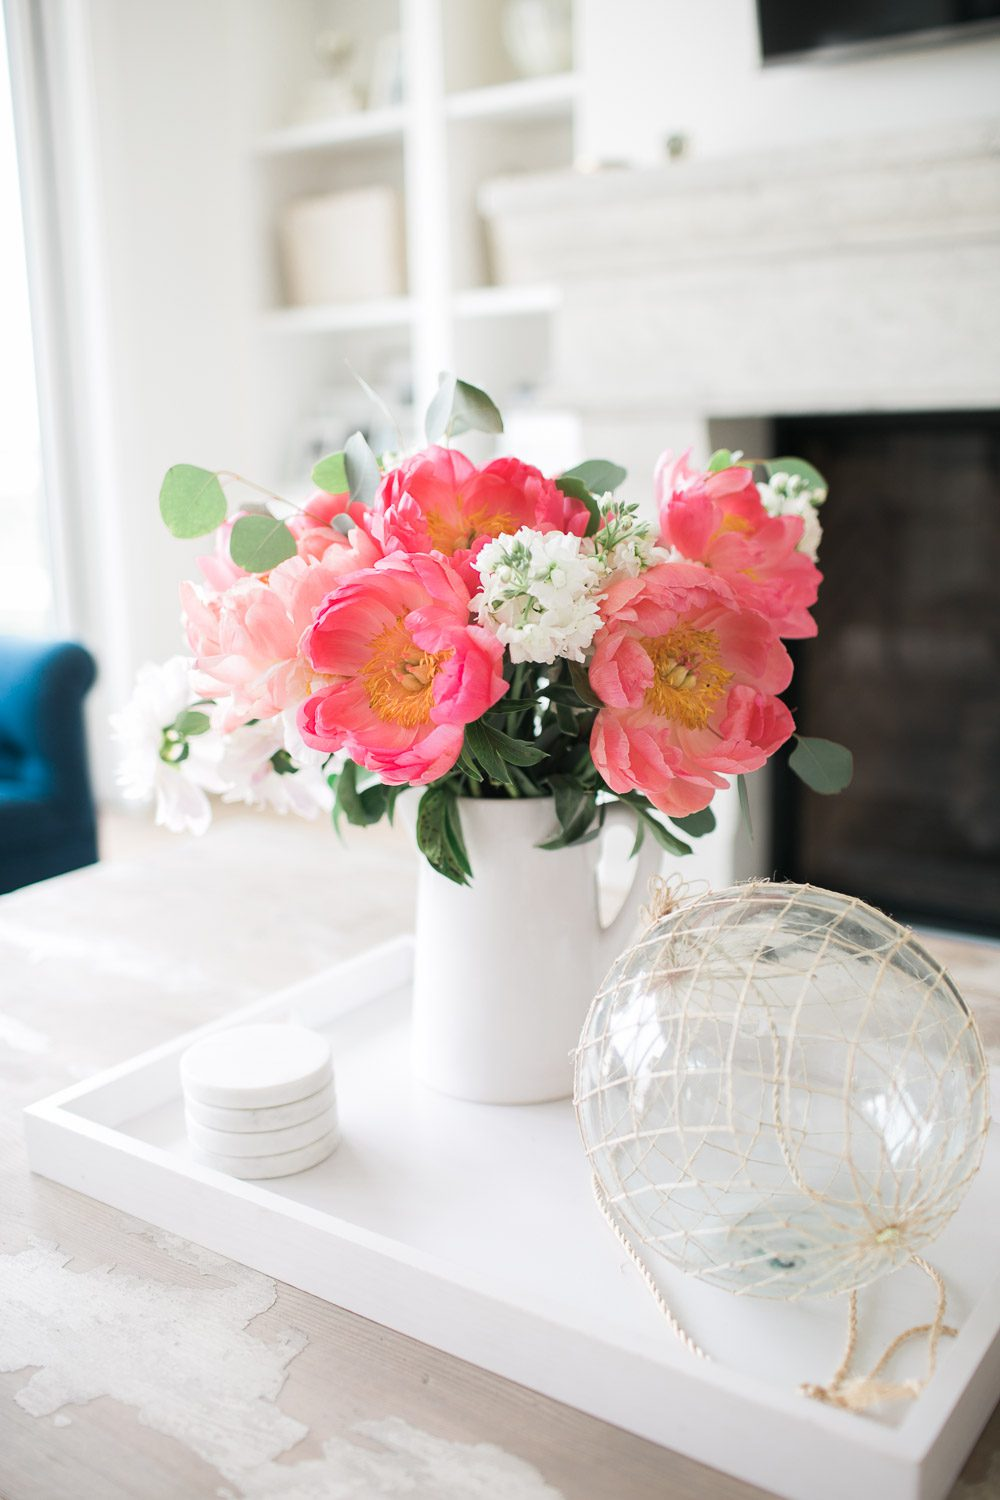 Jillian Harris What You Need to Know During a Reno